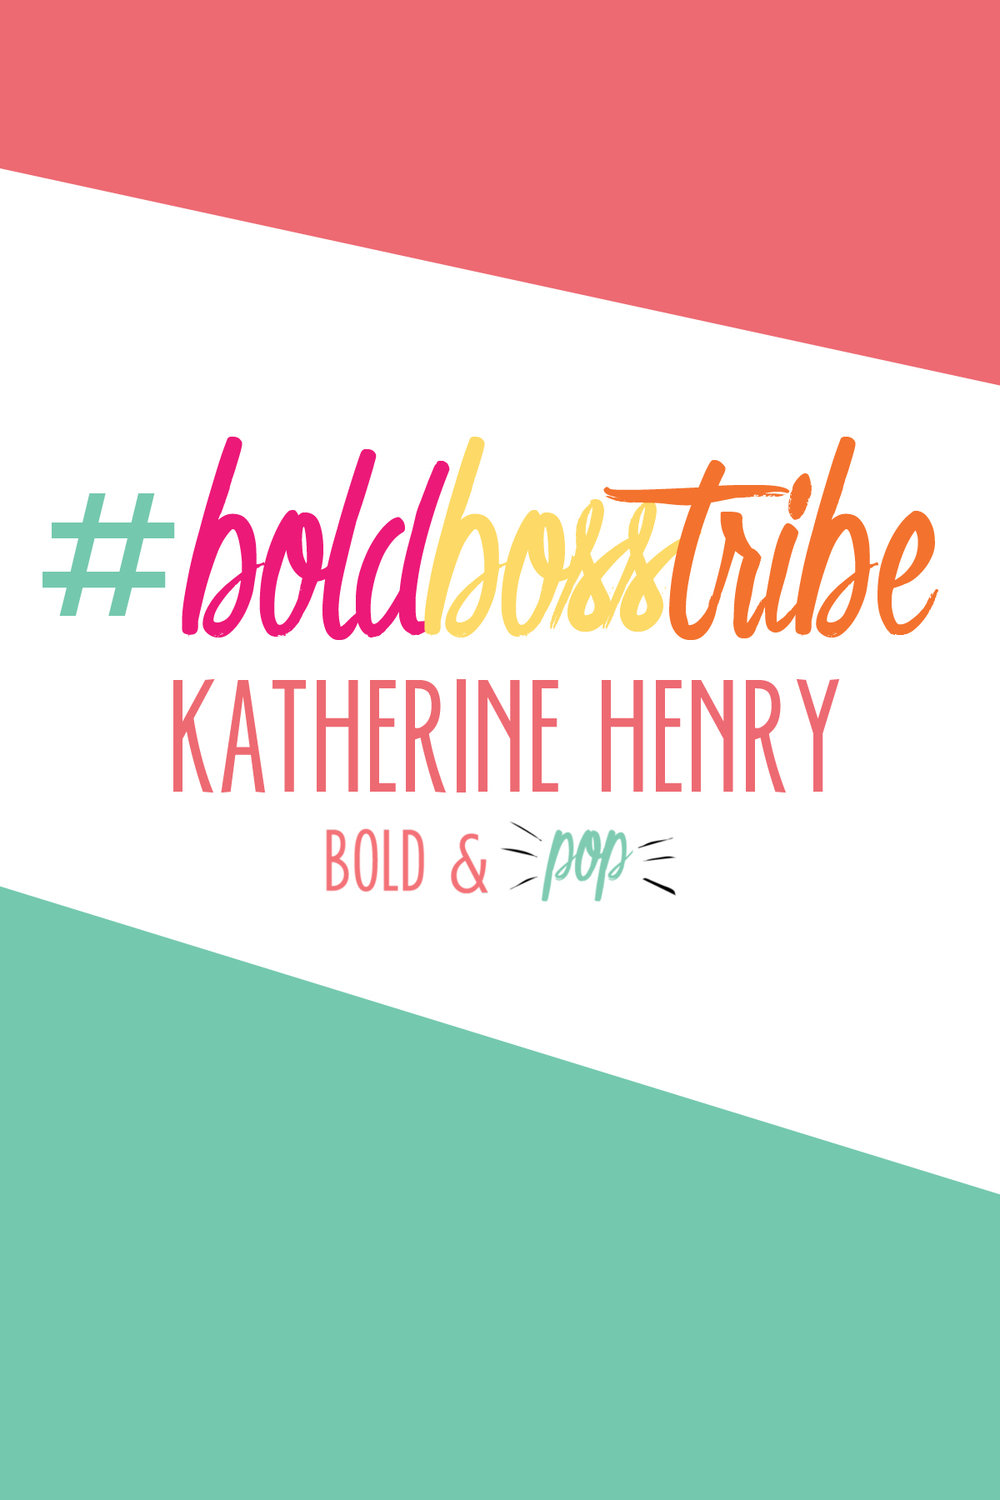 Bold & Pop #BoldBossTribe Feature with Boudoir Photographer Katherine Henry